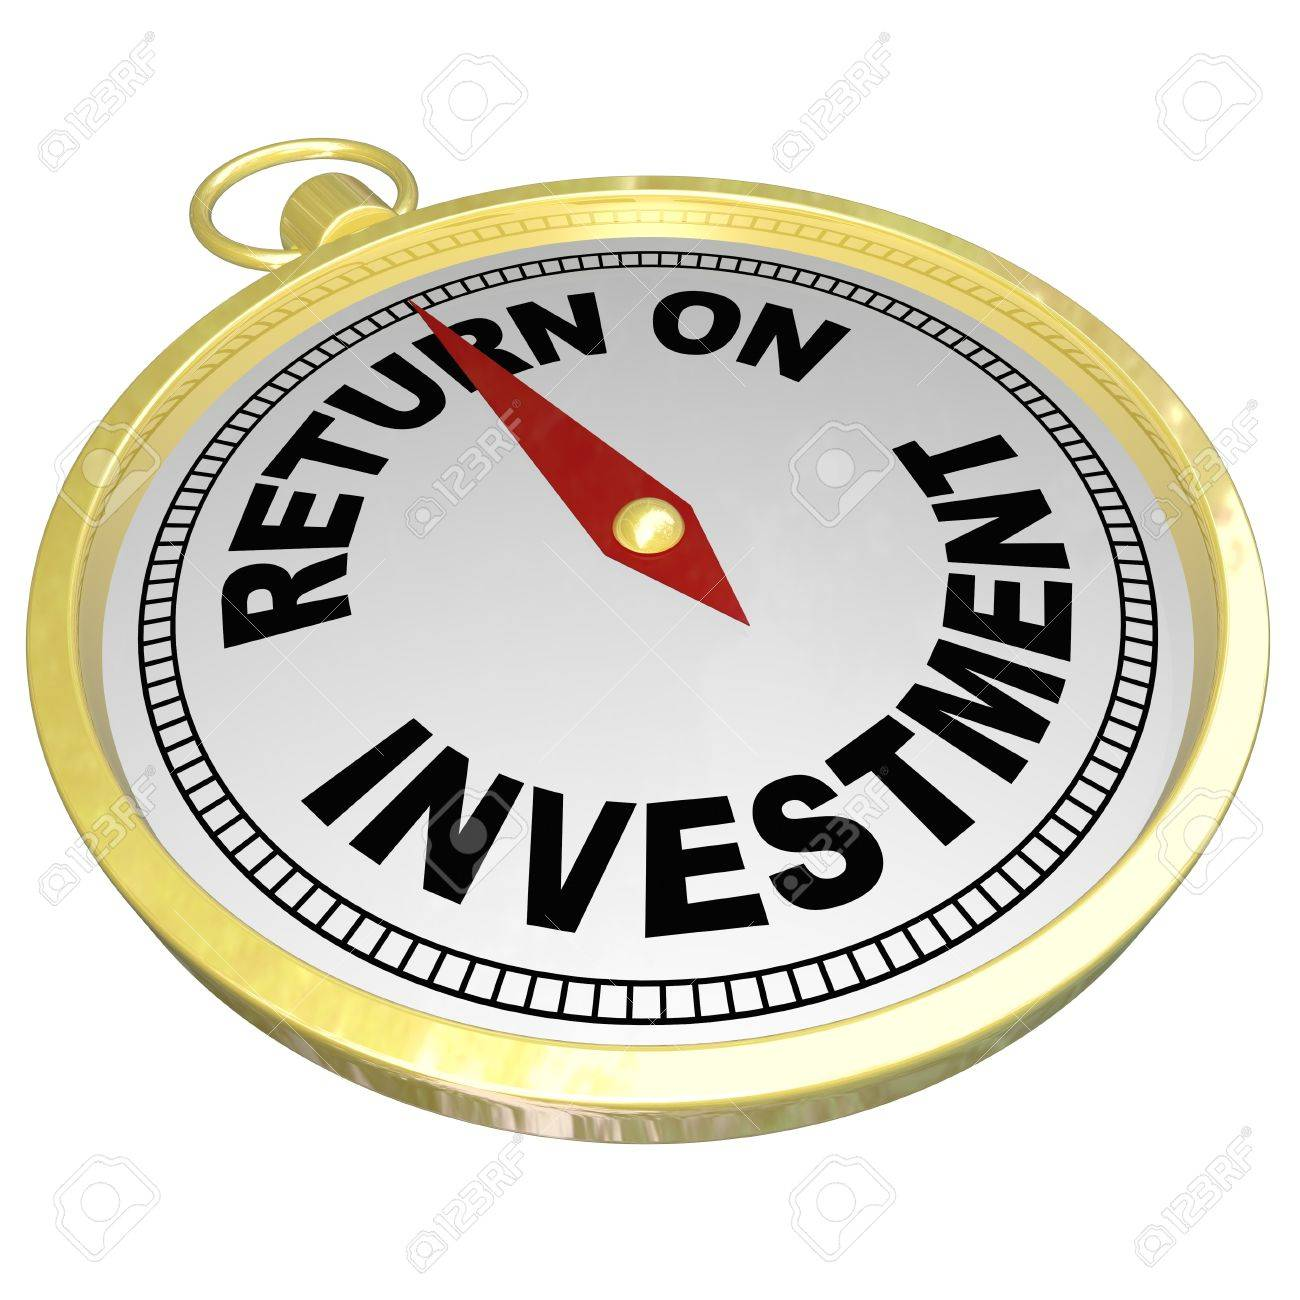 A gold compass with red needle pointing to words Return on Investment to illustrate ROI, investing in stocks, bonds, real estate or other money matters to grow wealth Stock Photo - 19587253